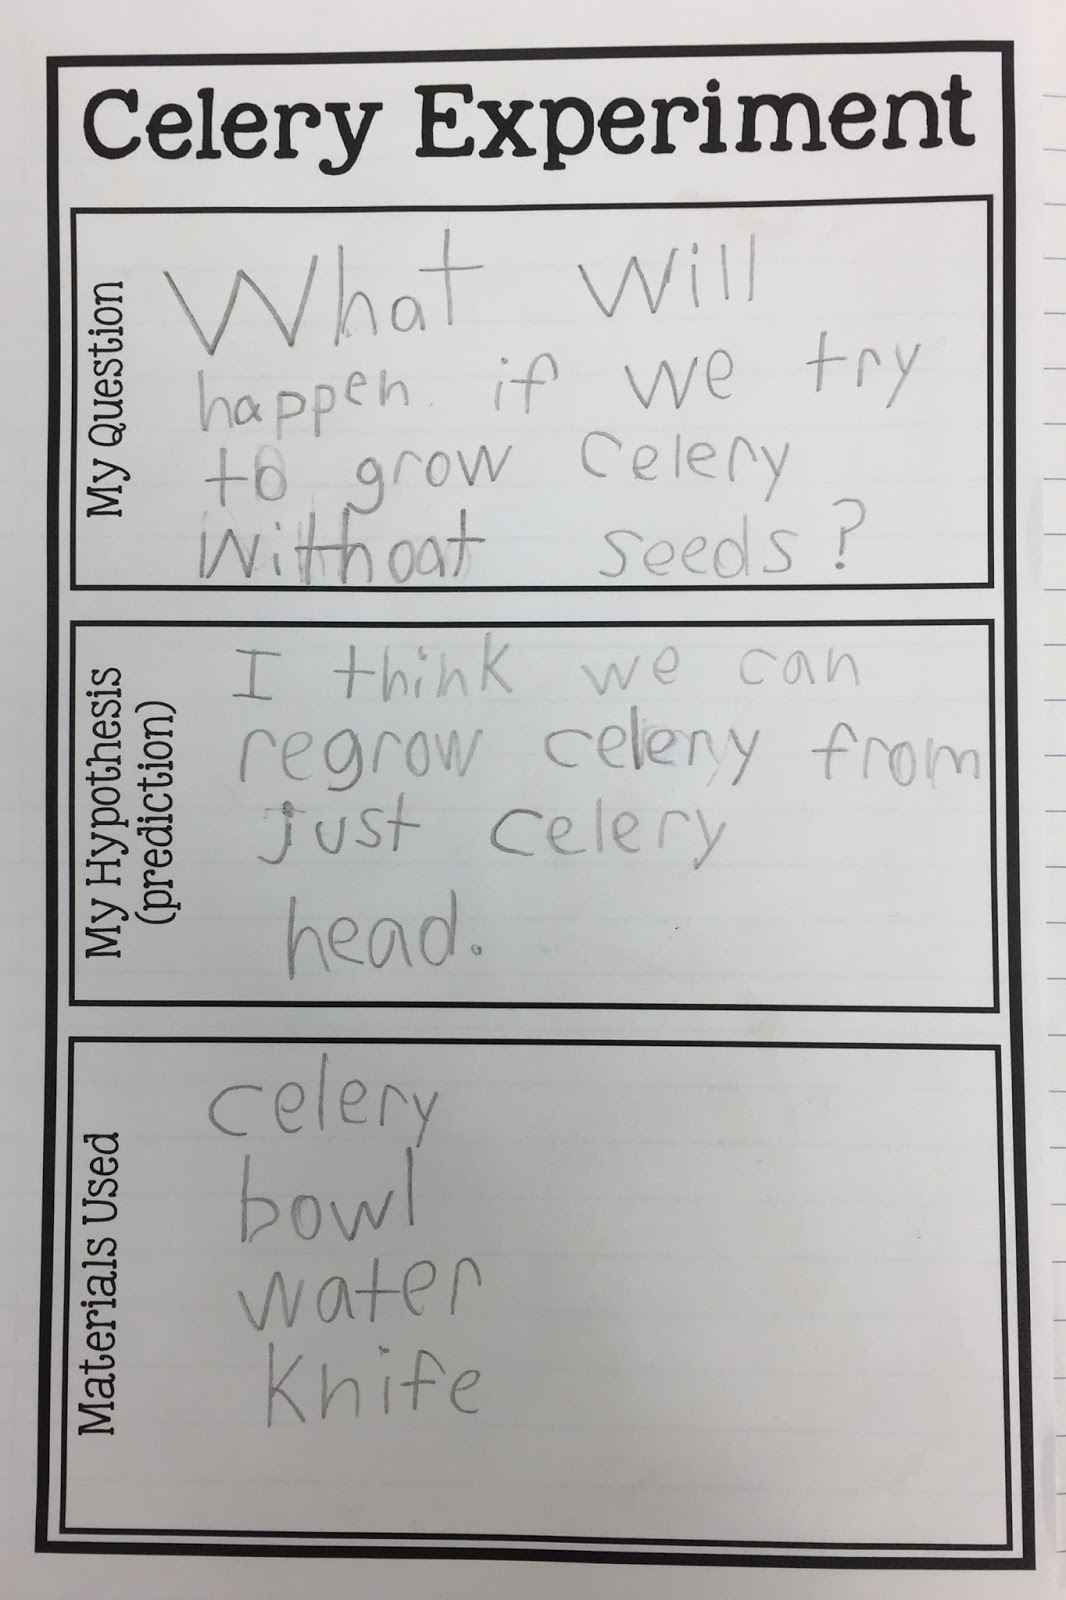 image about Celery Experiment Printable Worksheet titled Kearsons Clroom: The Wonderful Celery Experiment